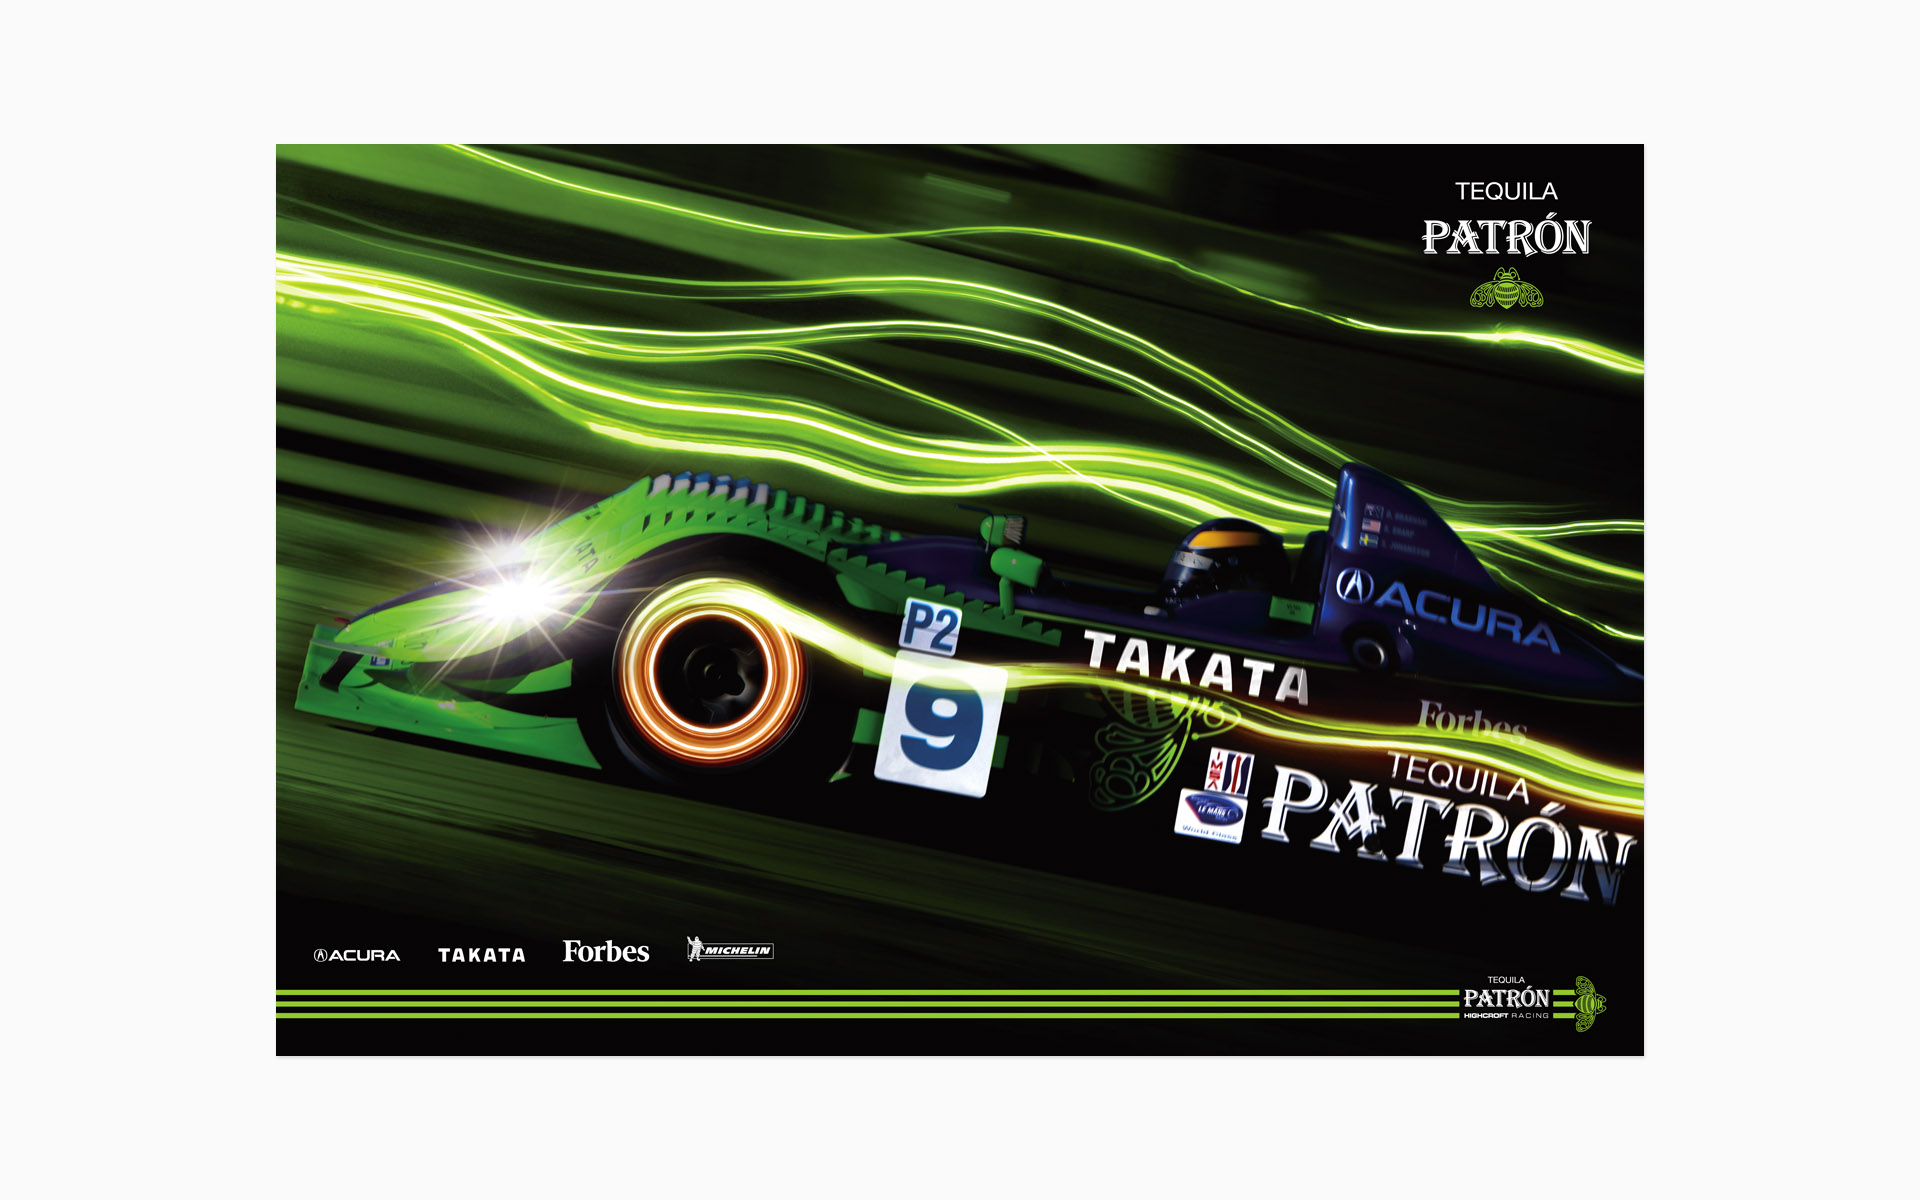 2008 Pátron Highcroft Racing Poster